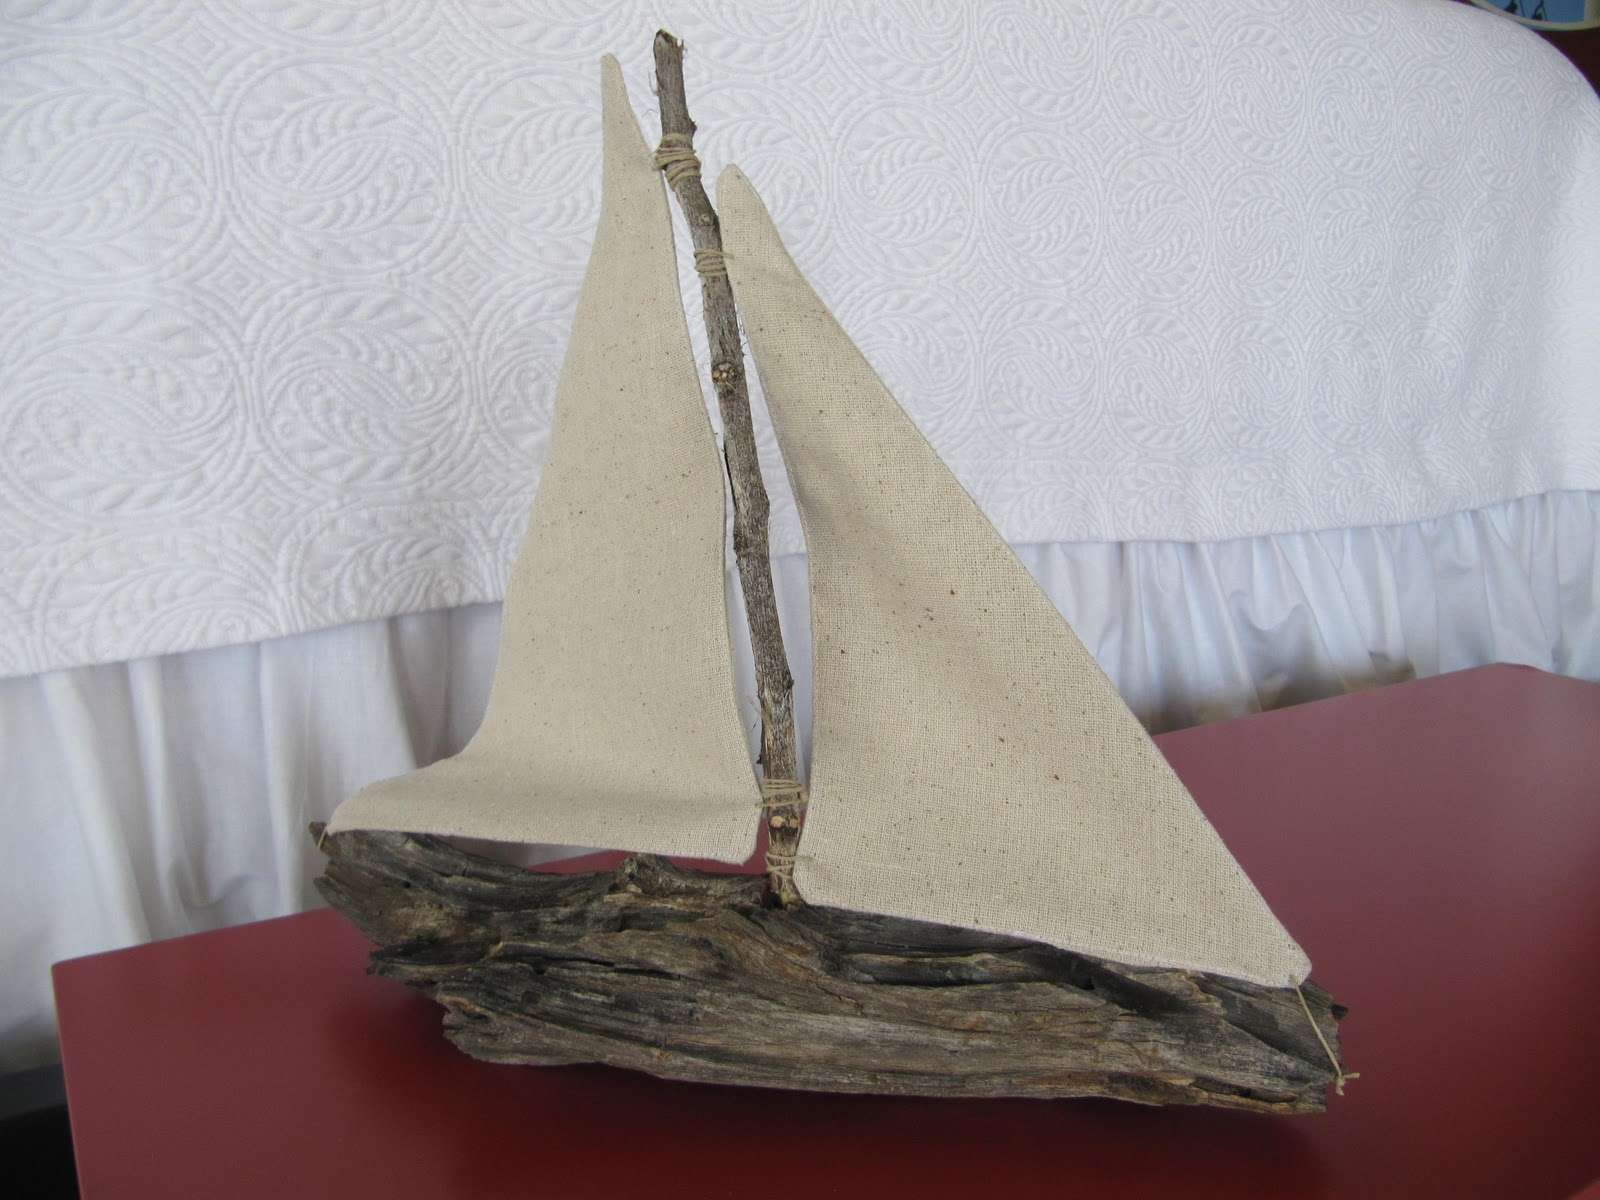 Laurie 39 s projects driftwood sailboat for Driftwood crafts to make